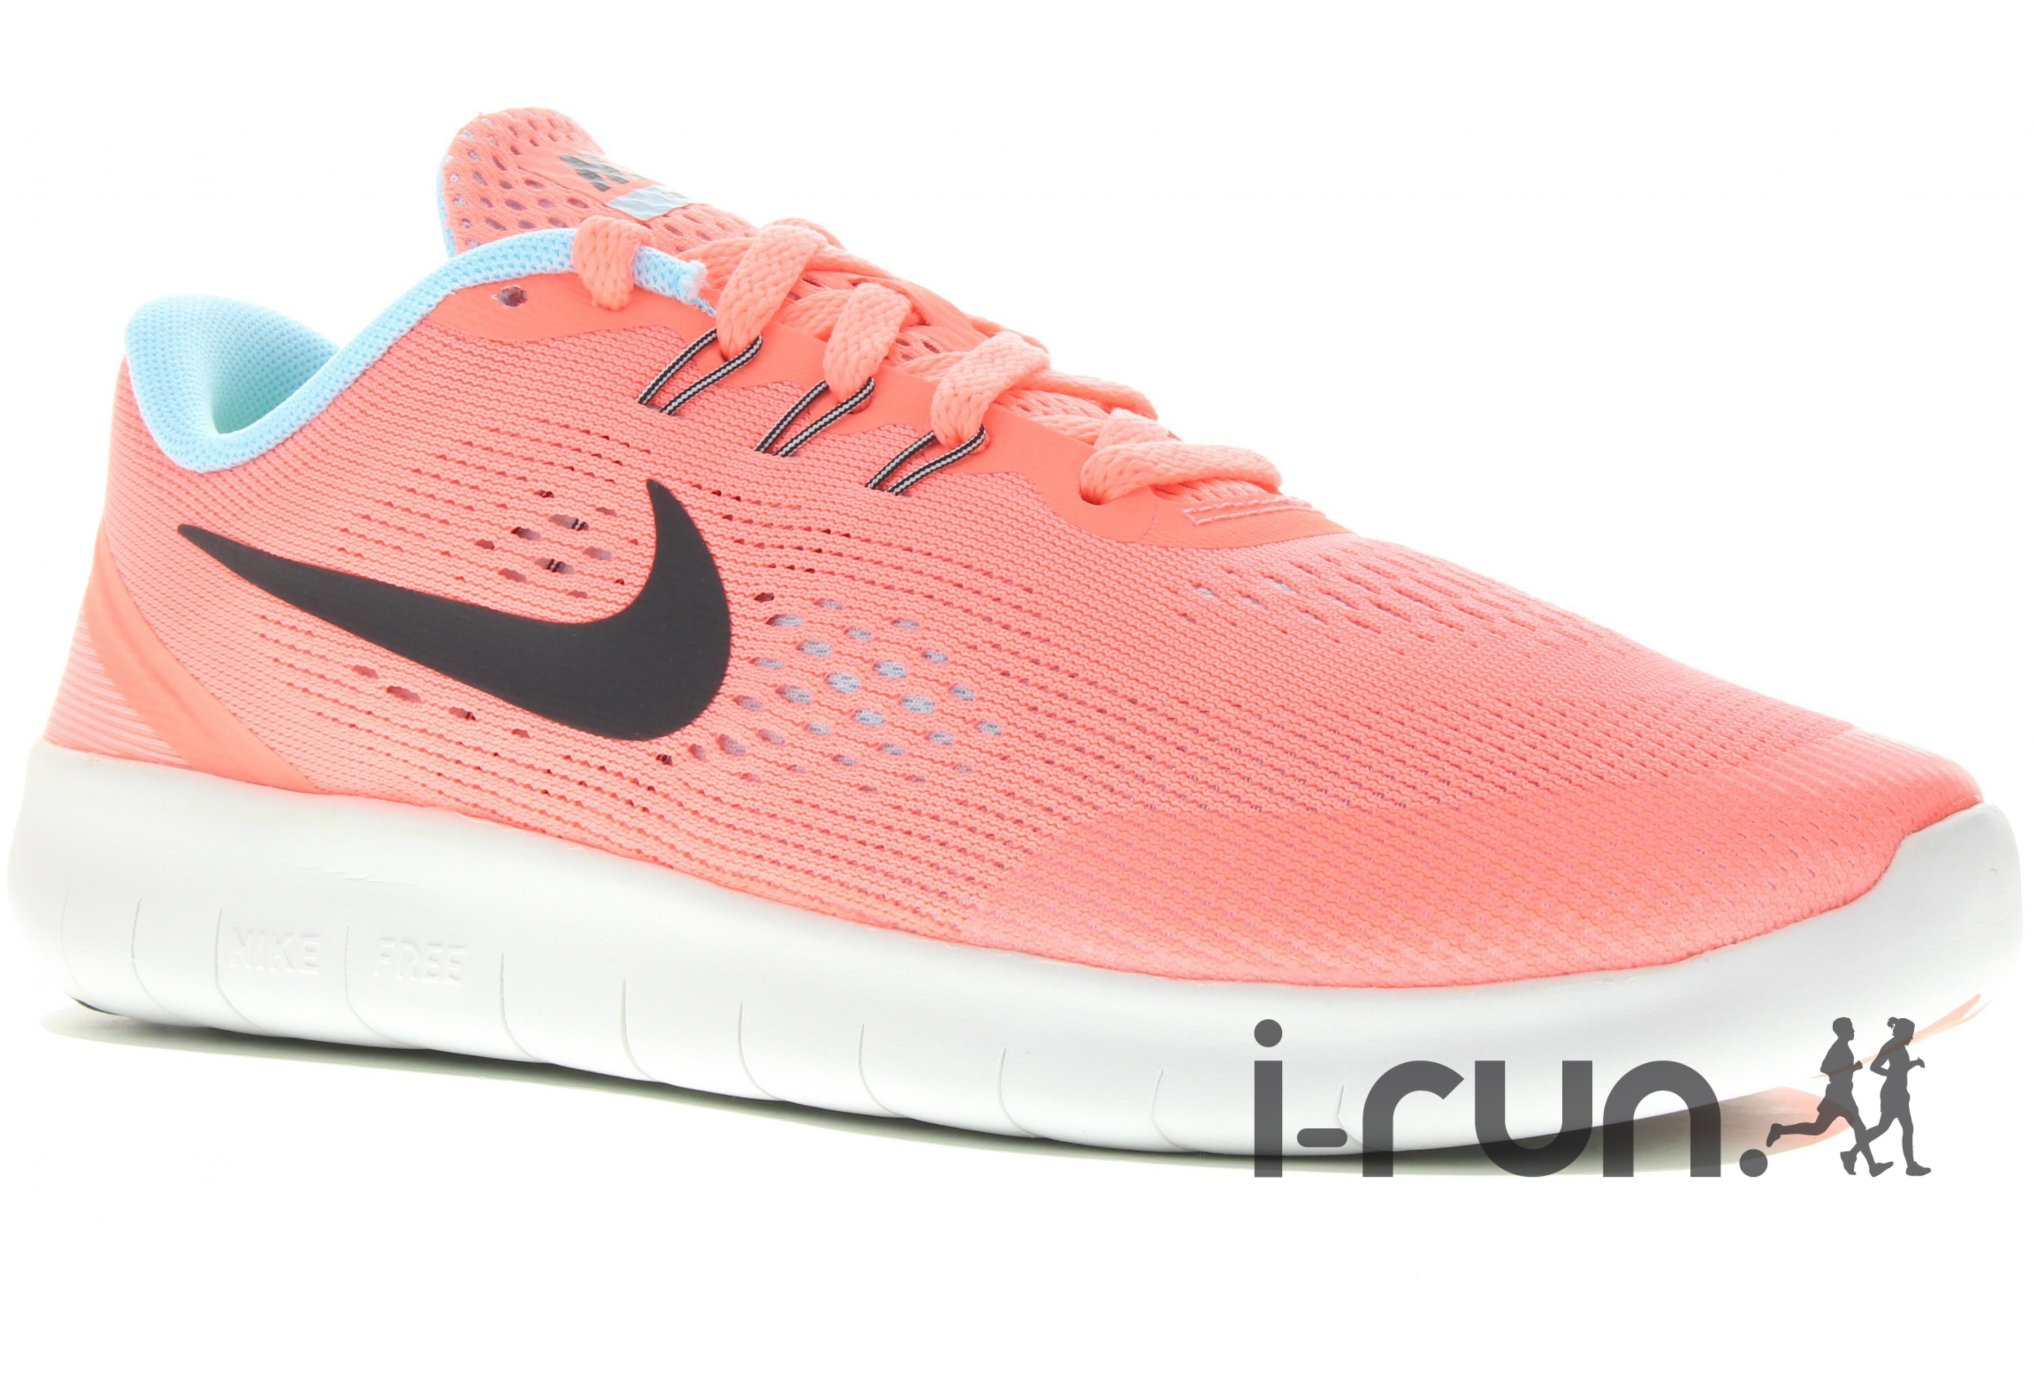 new styles 192ae 3f9d3 nike free run saumon